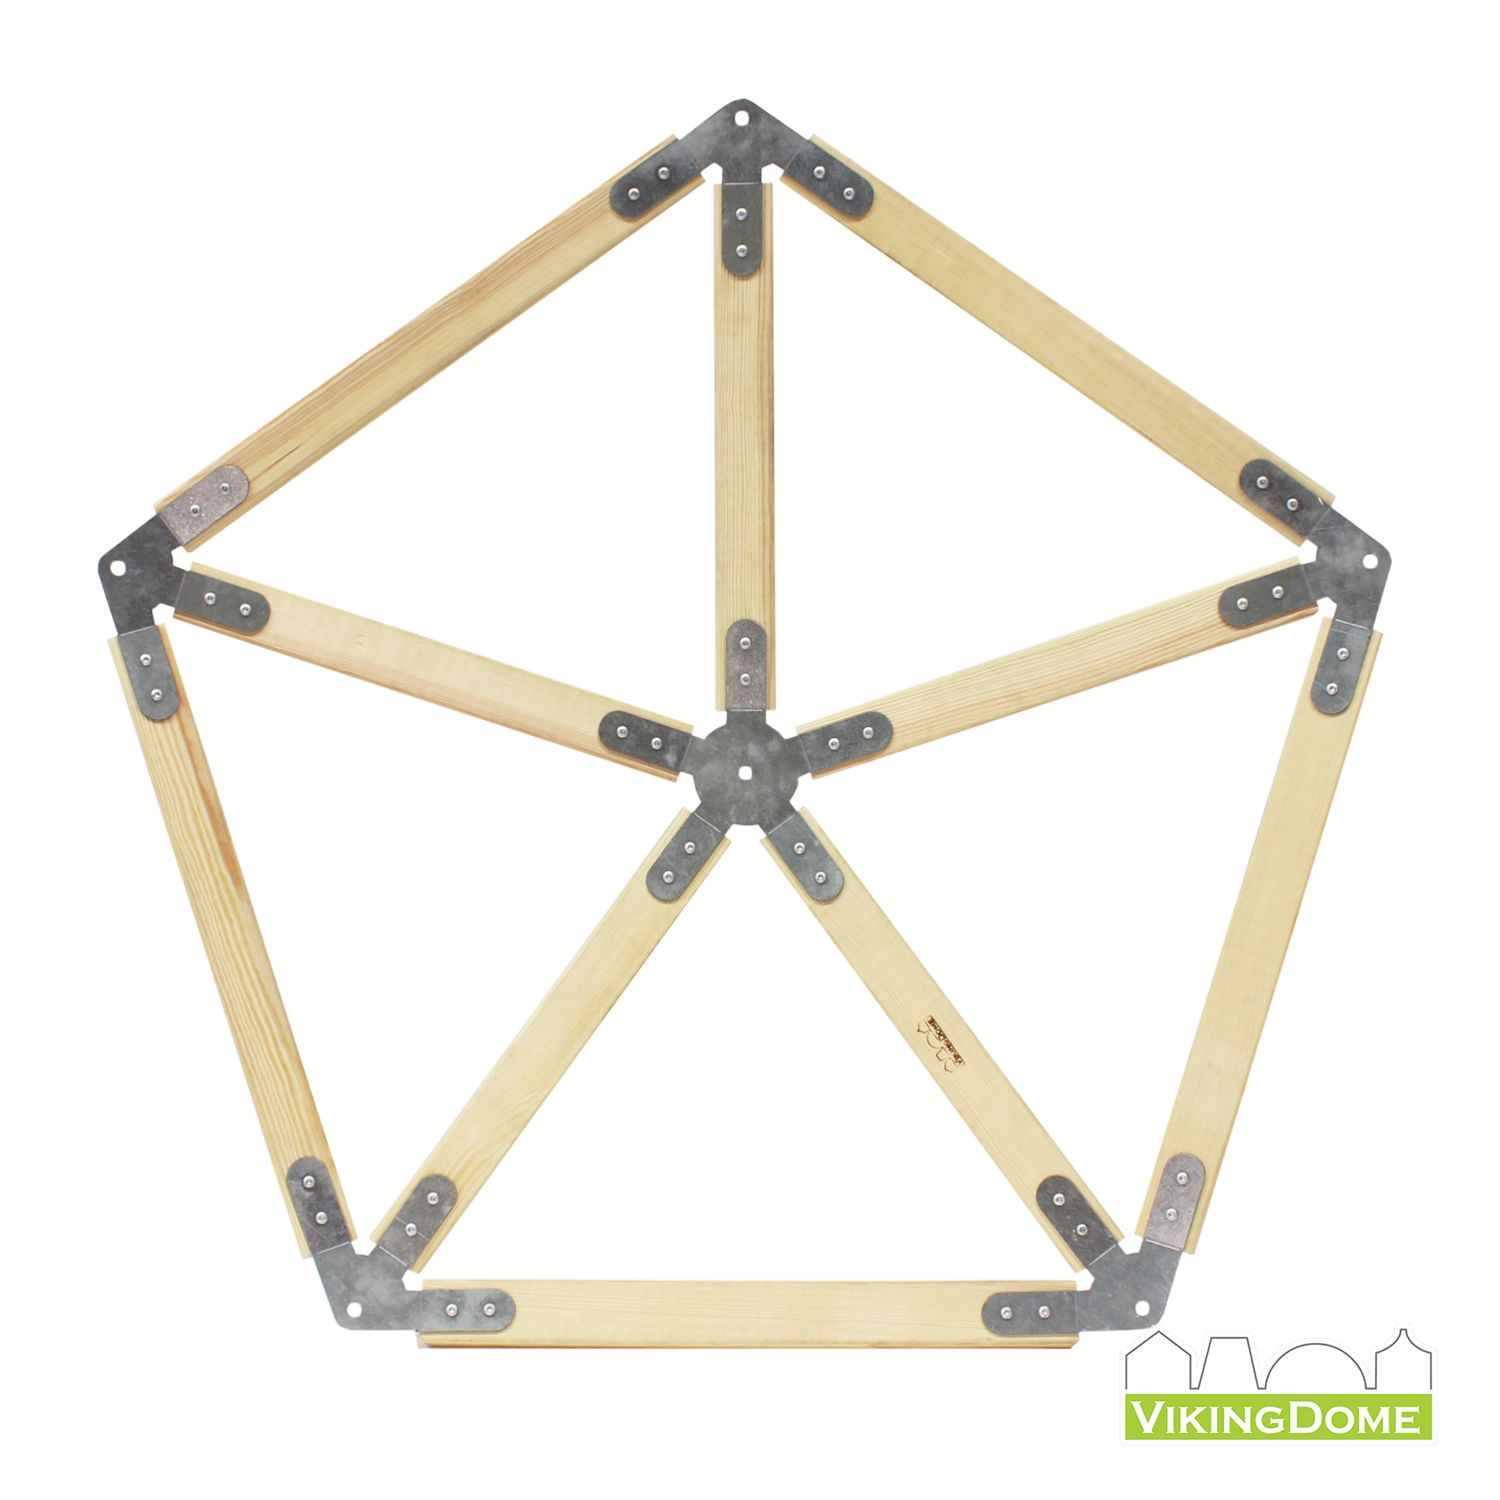 2x6 Heavy Duty Wood Geodesic Hub Kit: Vikingdome Dome Frame System Star With Wood (5